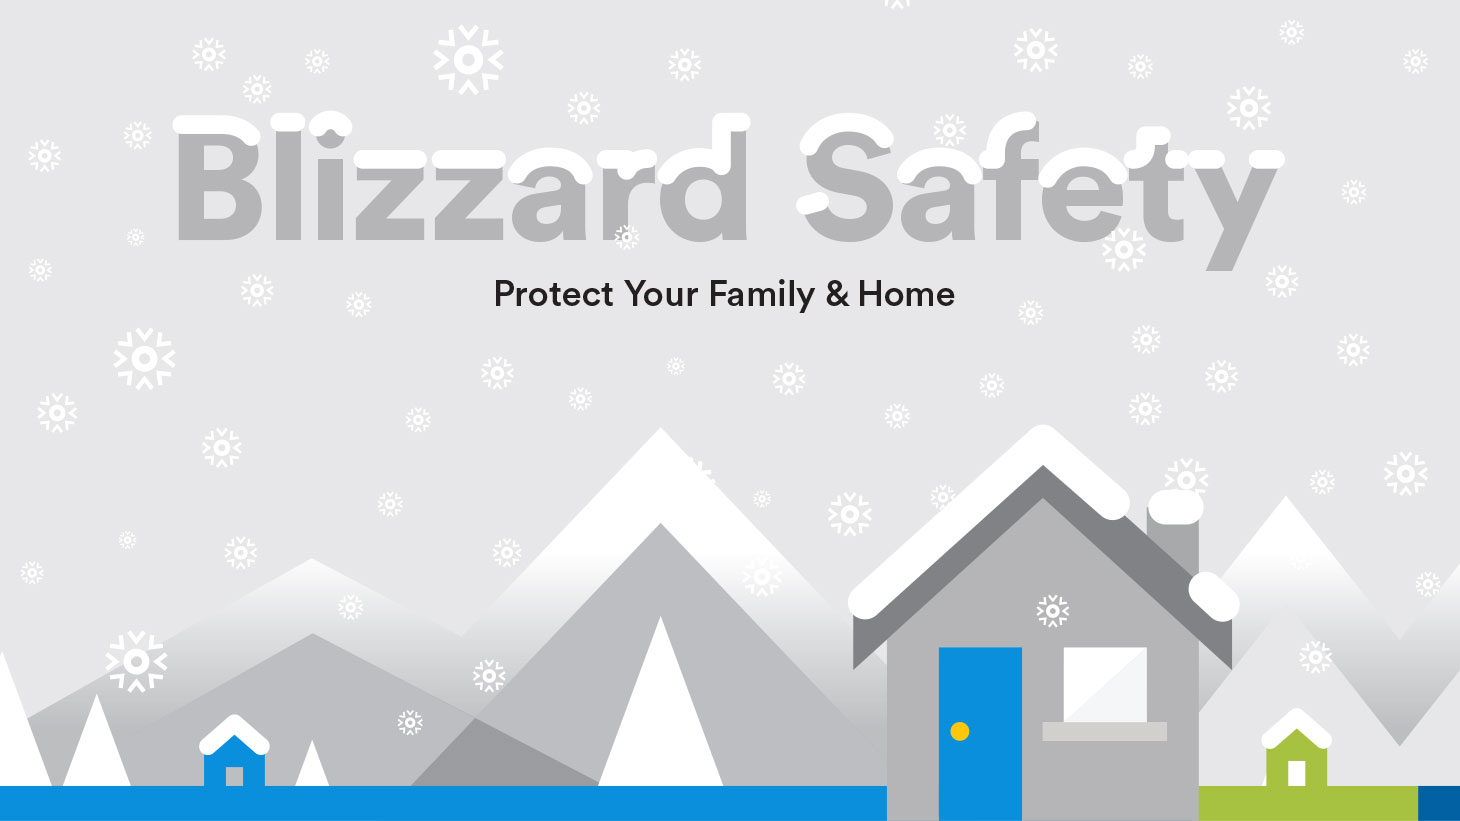 Tips to Stay Safe During a Snowstorm